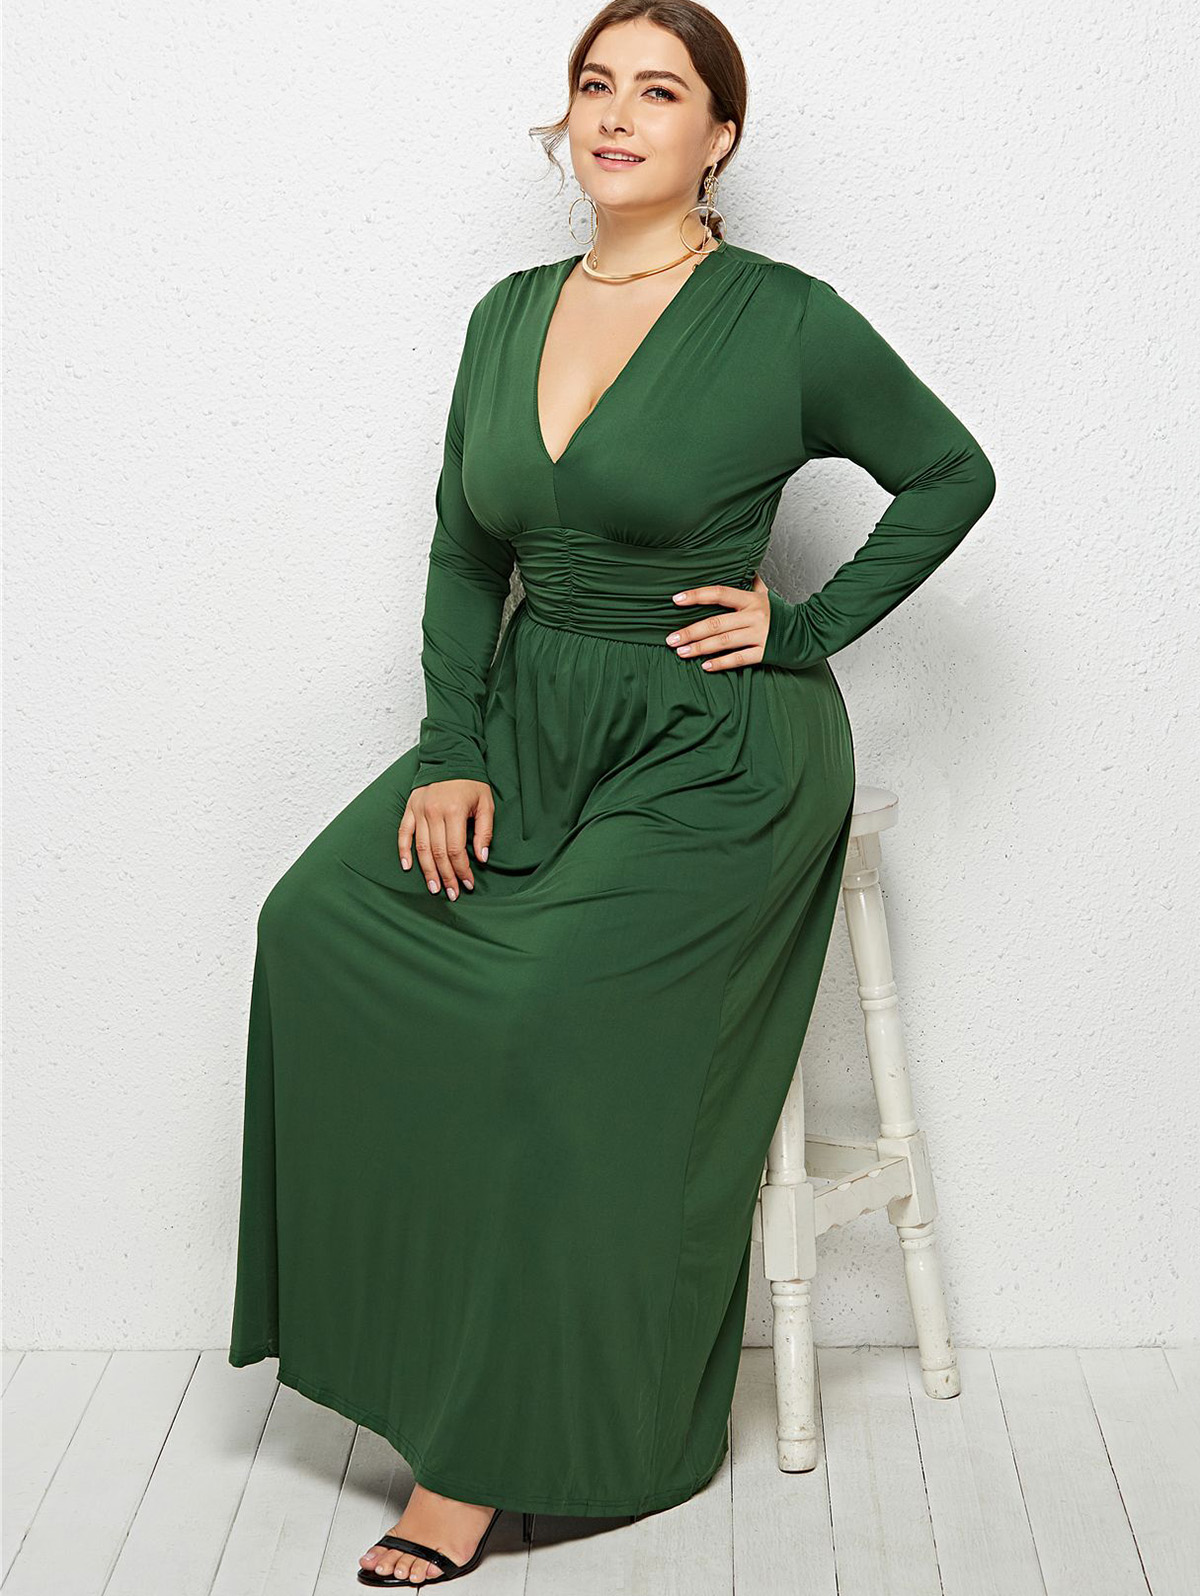 US $17.63 50% OFF Wipalo Women Plus Size Plunging Neck Empire Waist Maxi  Dress Fit And Flare Solid Formal Evening Party Dress Casual Vestidos 3XL-in  ...